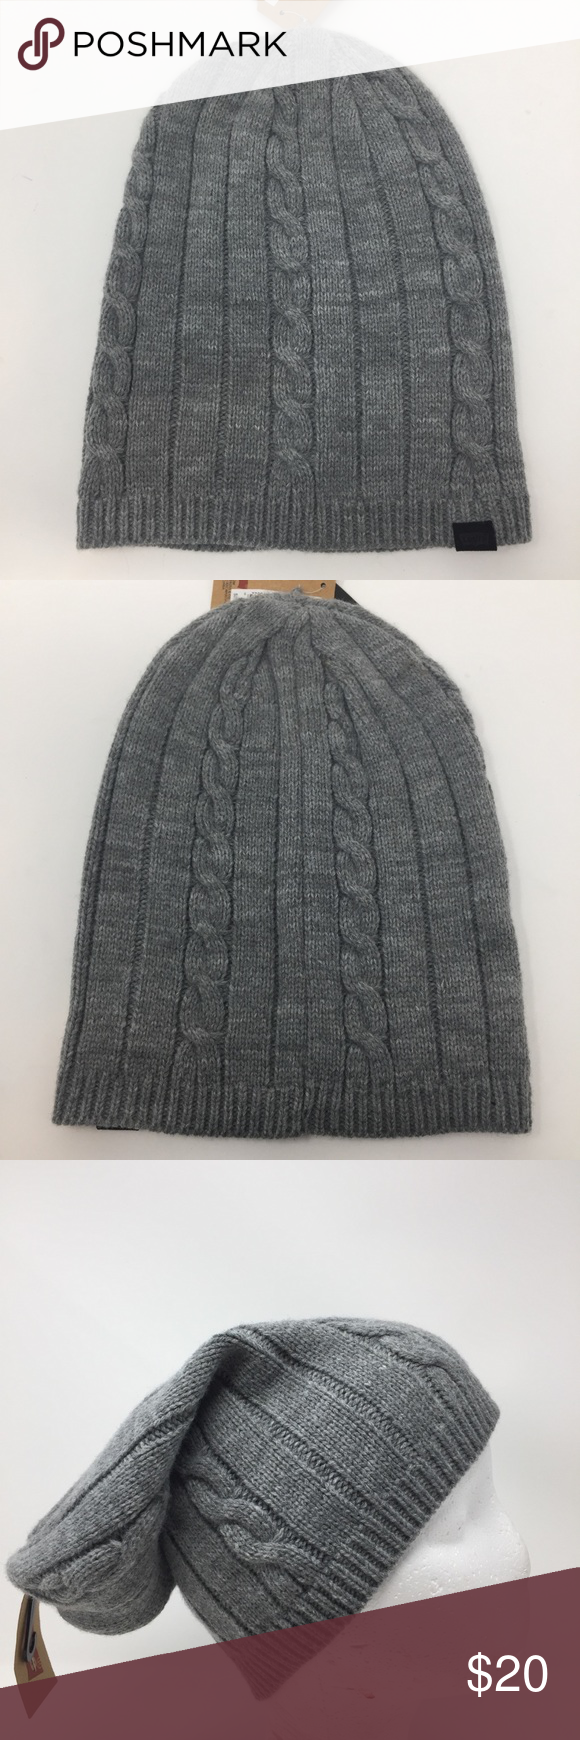 b32e585b1cb Levis Grey Knit Slouchy Beanie NEW Onesize Levis Grey Knit Slouchy Beanie  NEW with tag. Onesize Levi s Accessories Hats